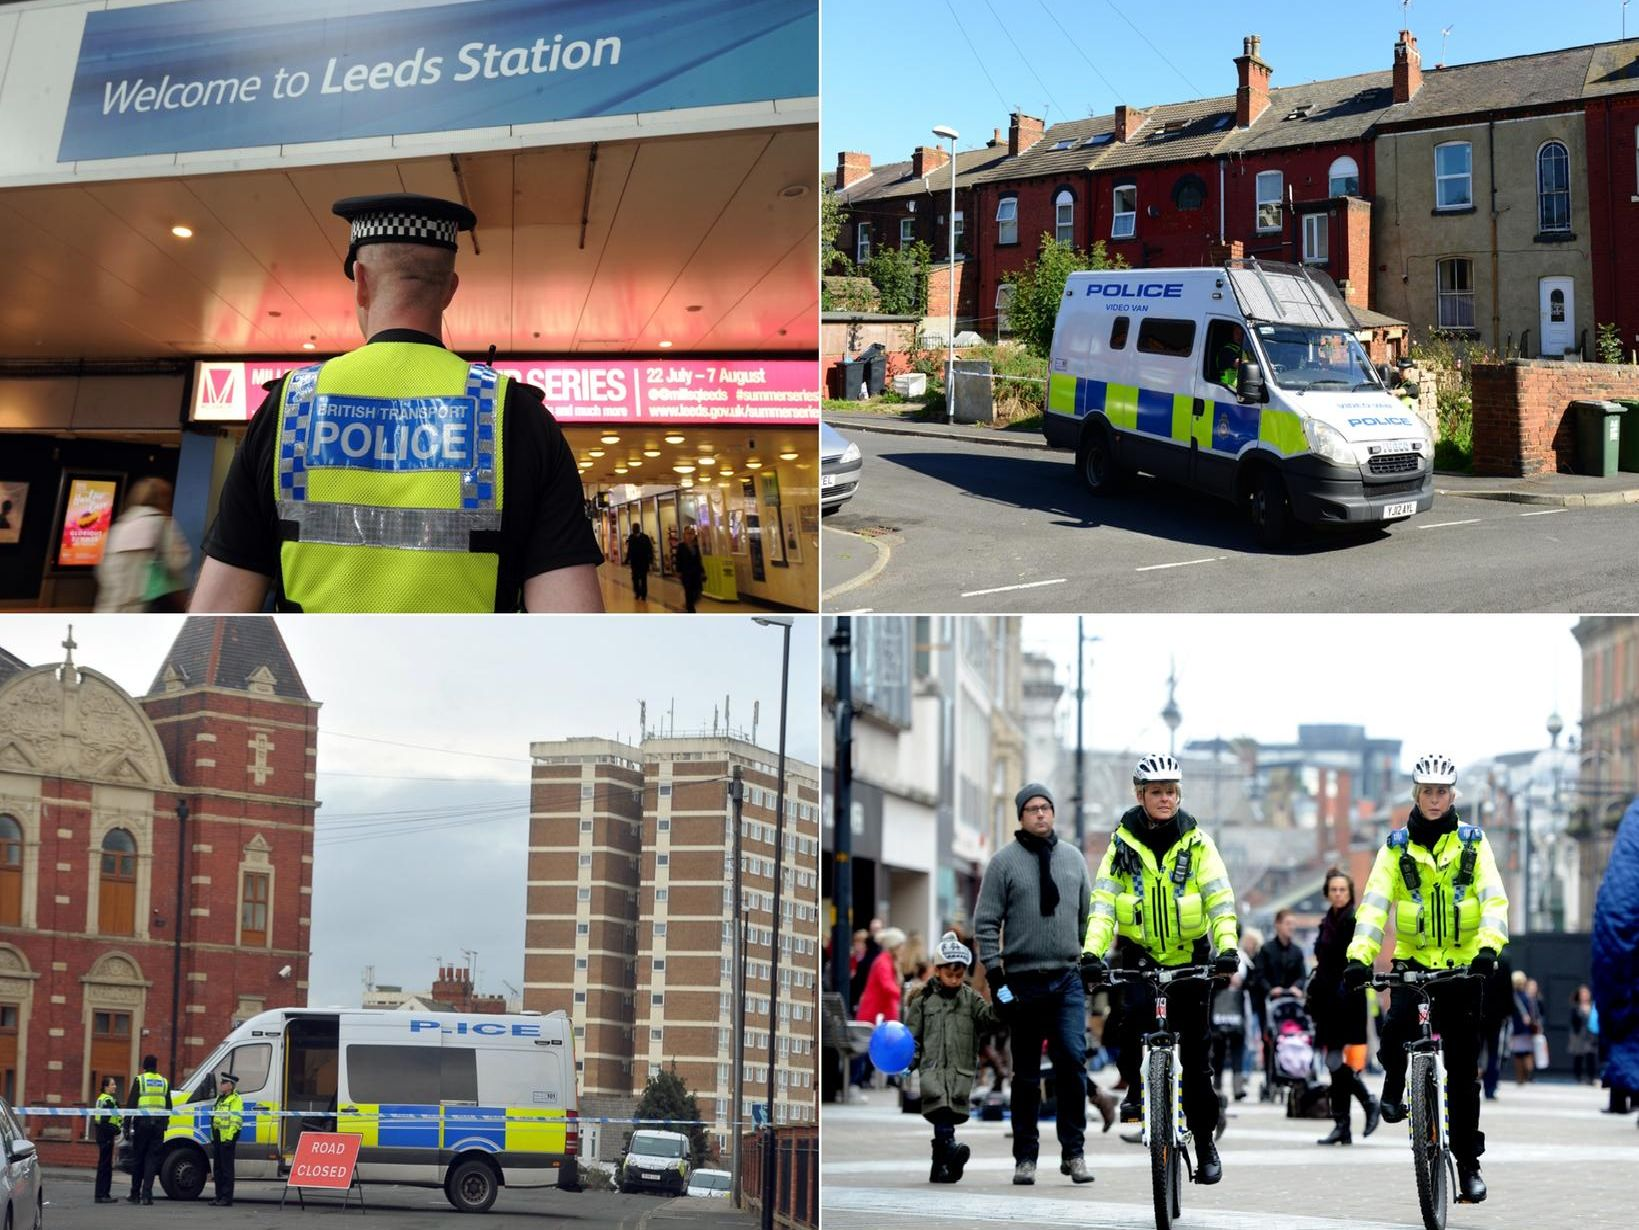 The latest crime figures, released by Police.uk, have revealed the crime hotspots of Leeds in May 2019.